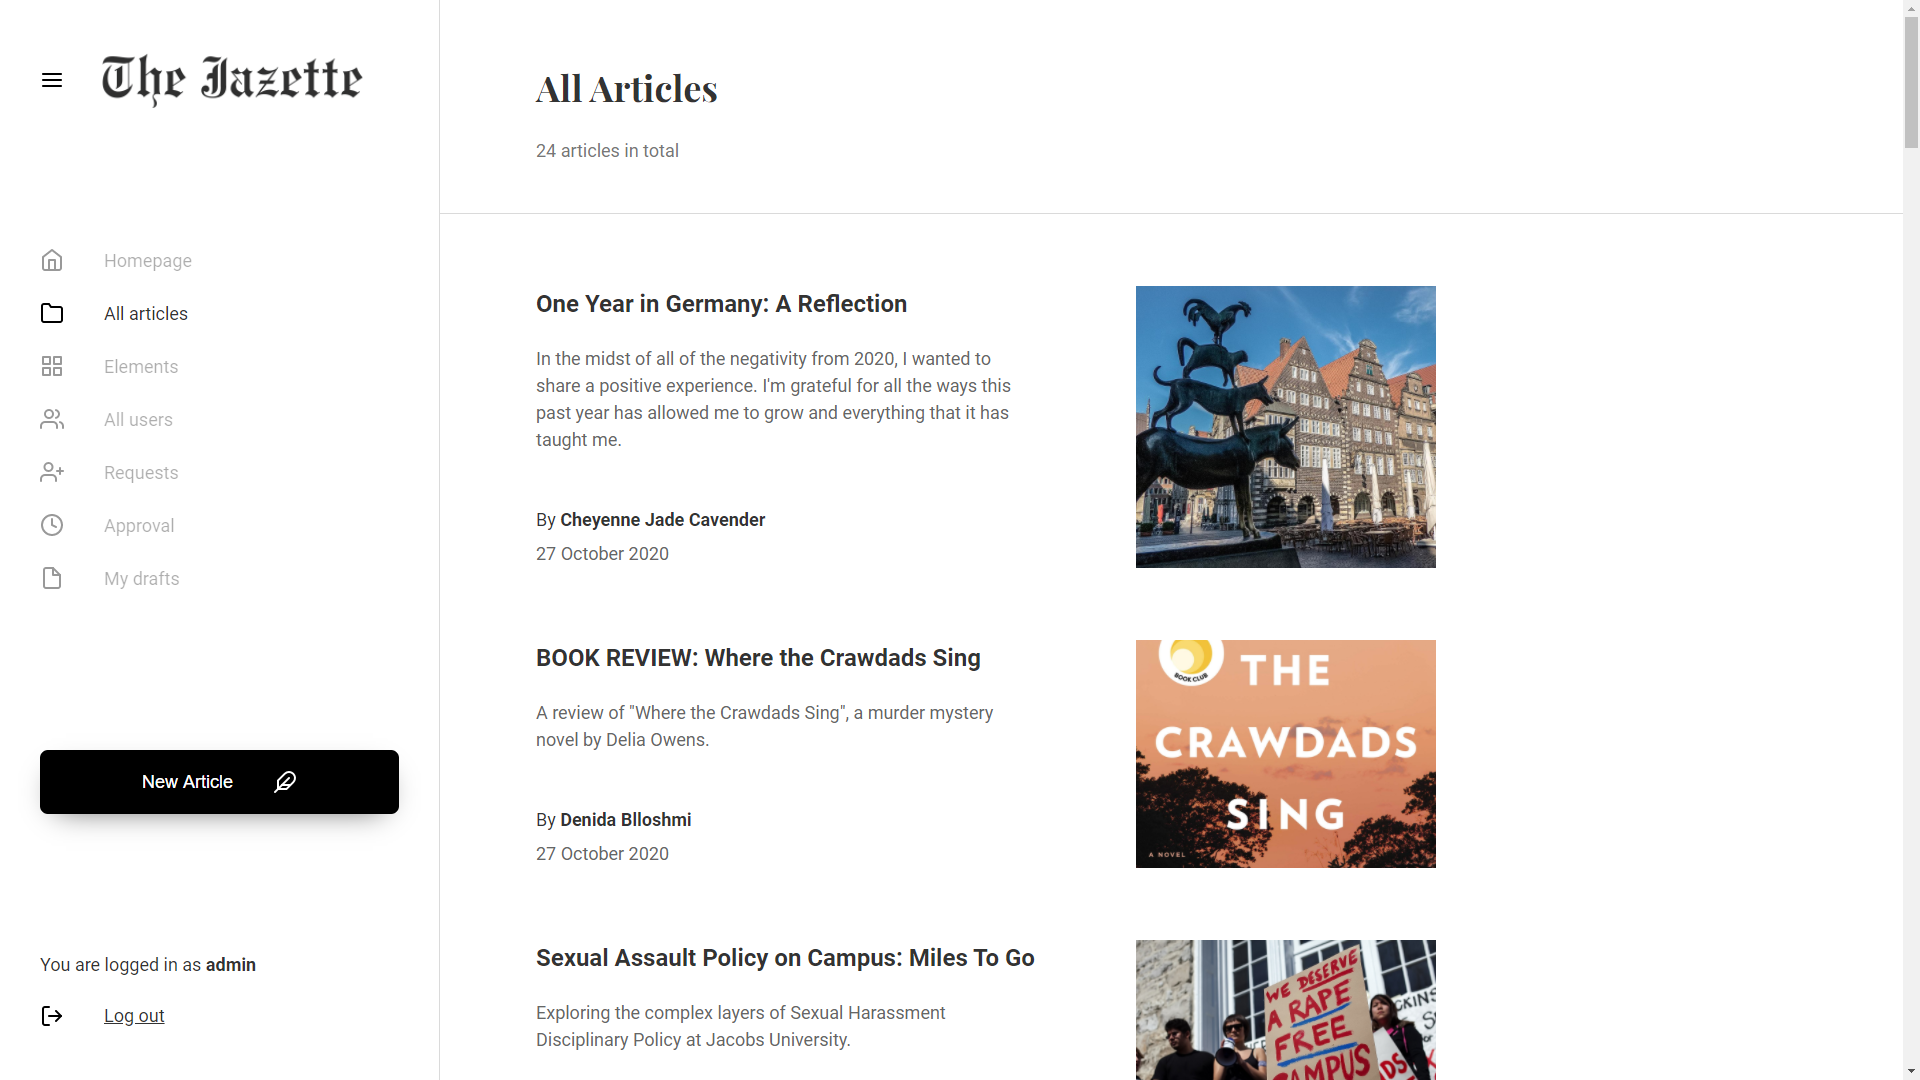 Editorial panel: all articles page